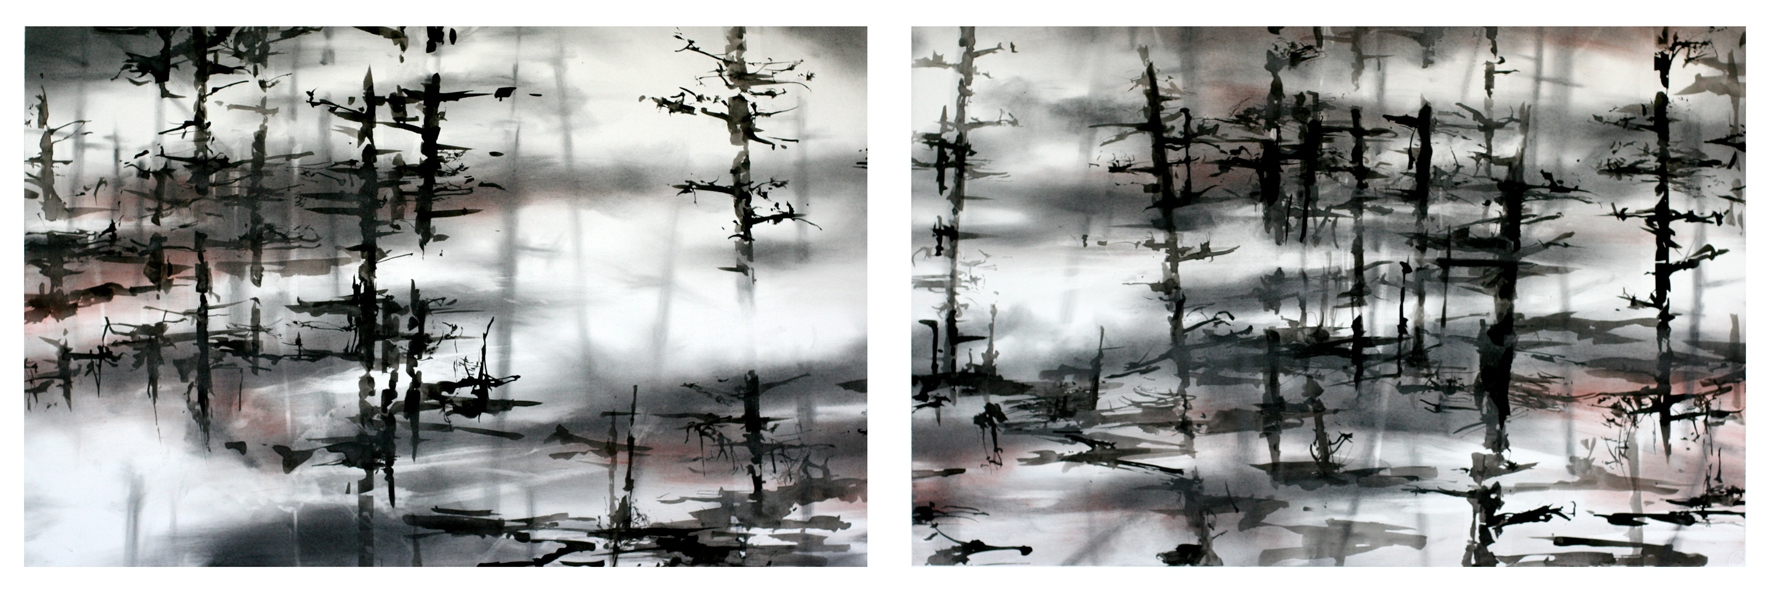 recent drawings mist